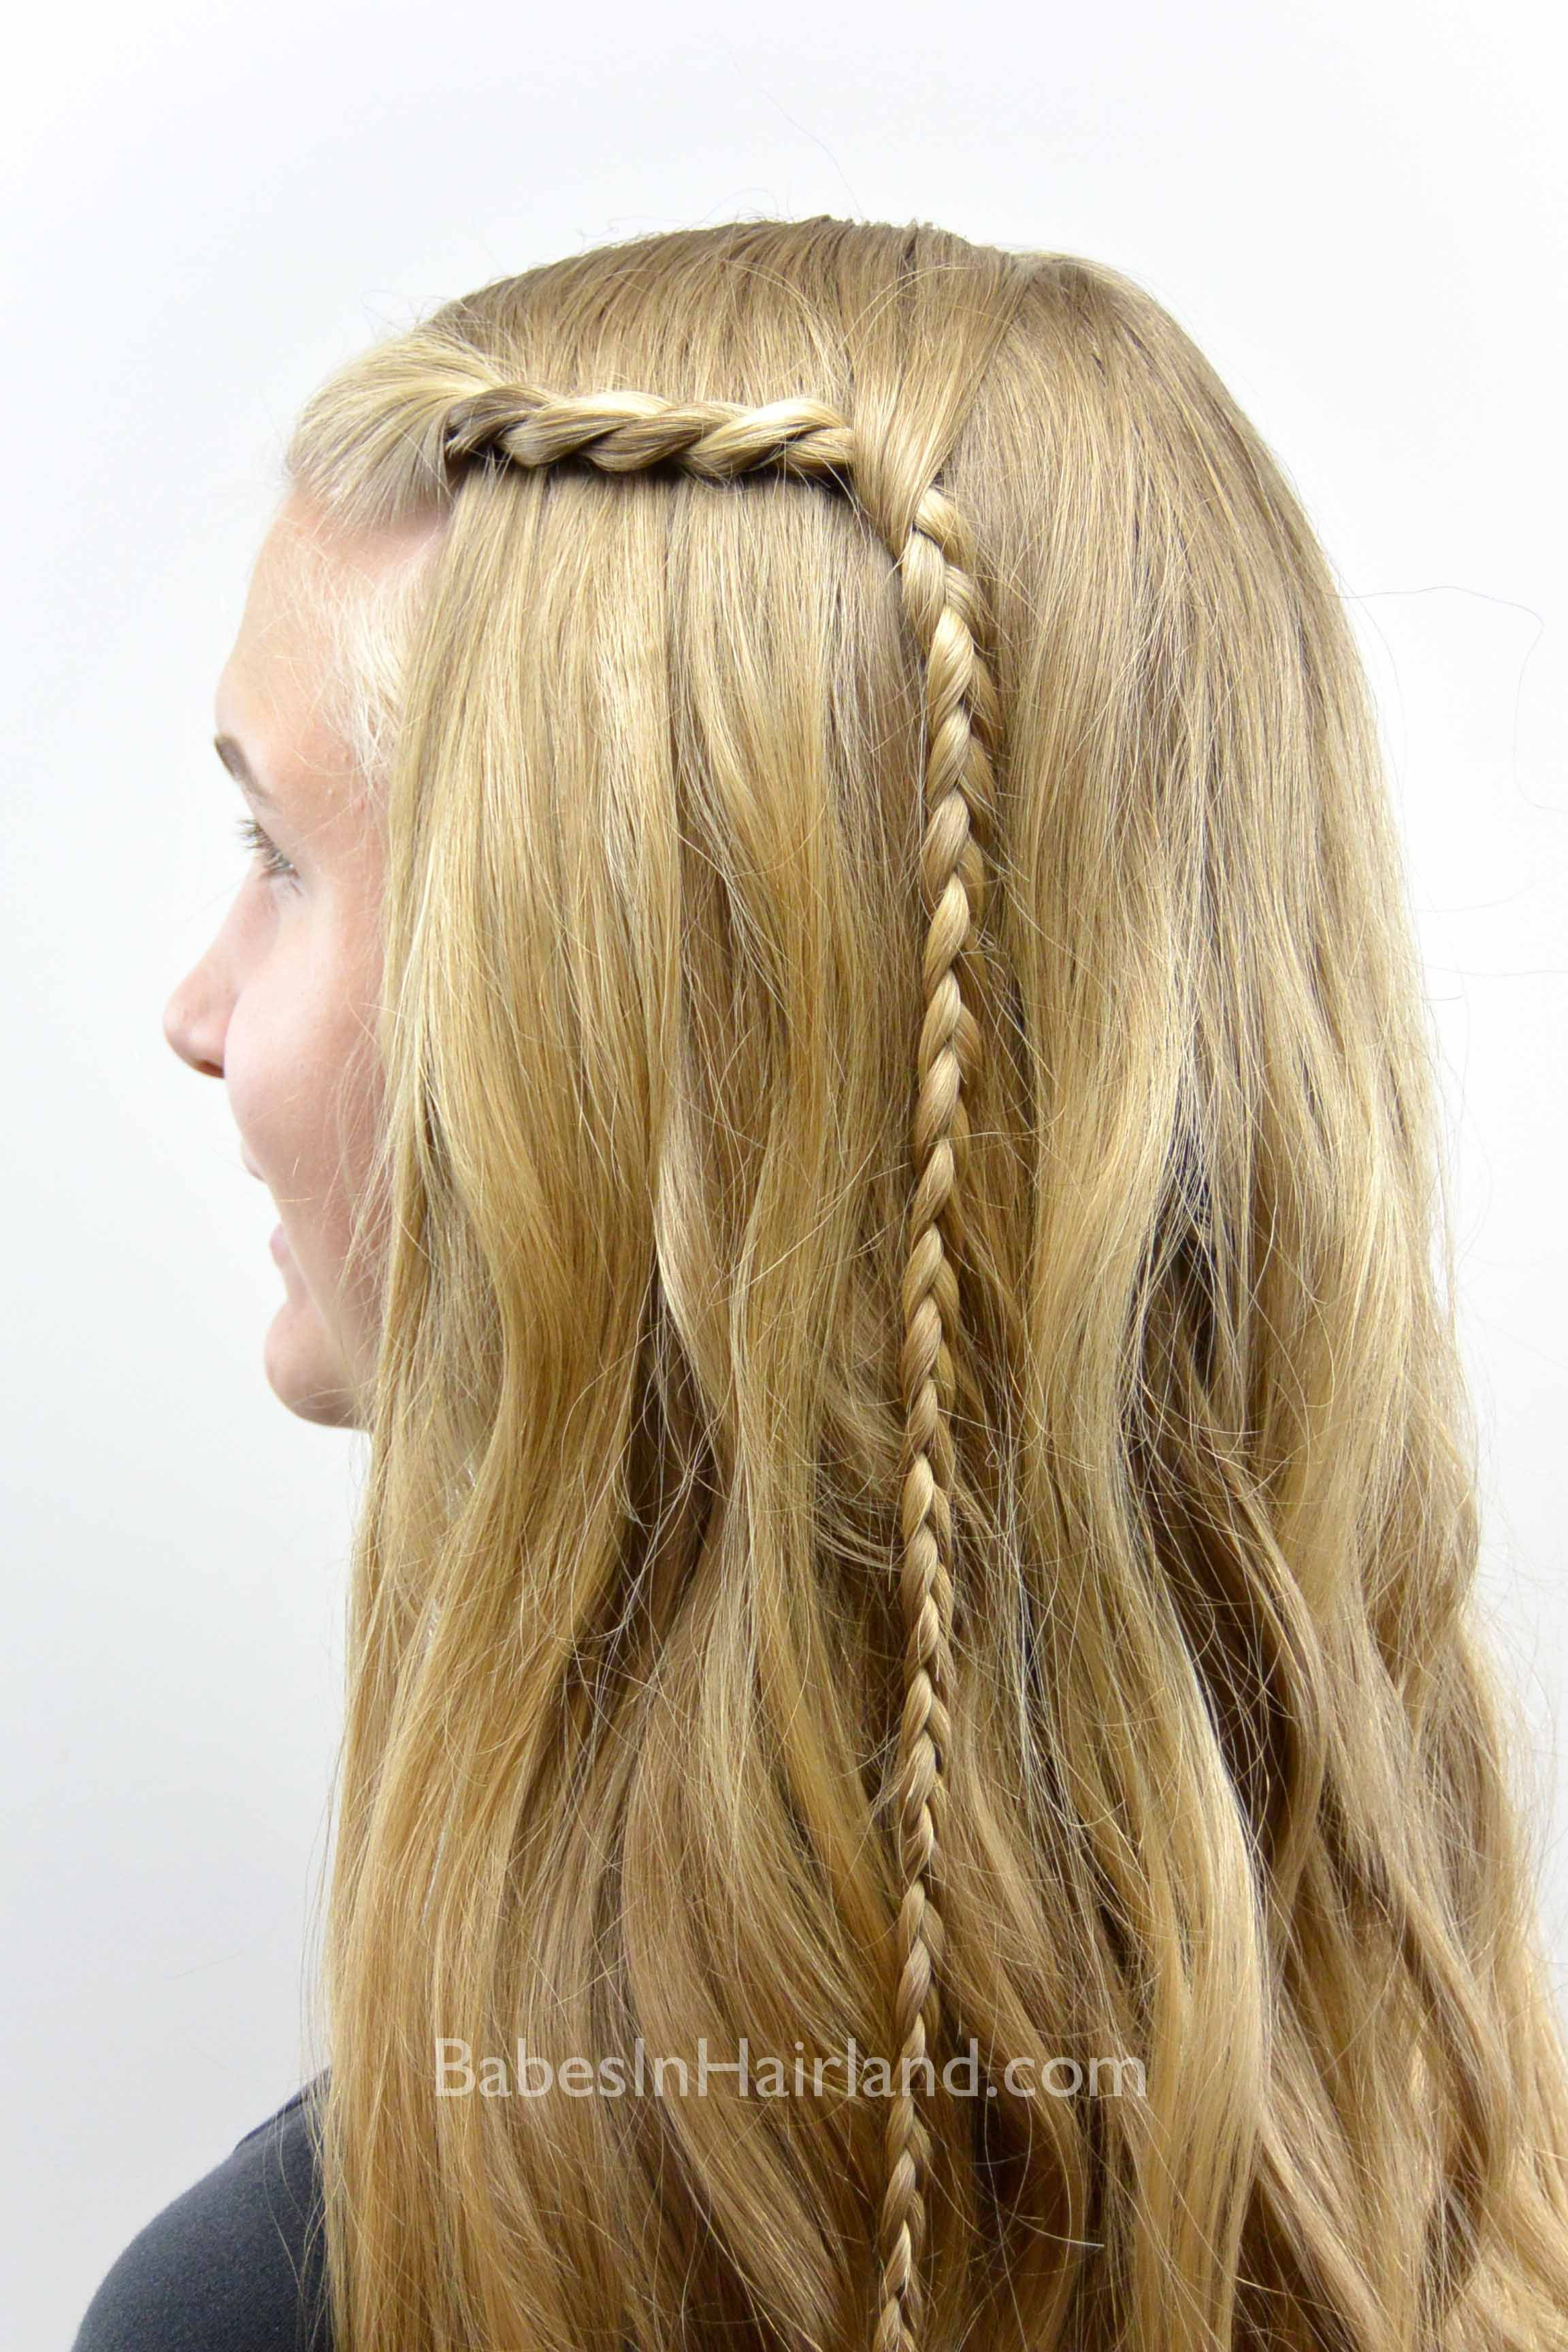 25 little girl hairstylesyou can do yourself hairstyles 25 little girl hairstylesyou can do yourself get out of your hairstyle rut and do something a little more fun via make it and love it solutioingenieria Gallery